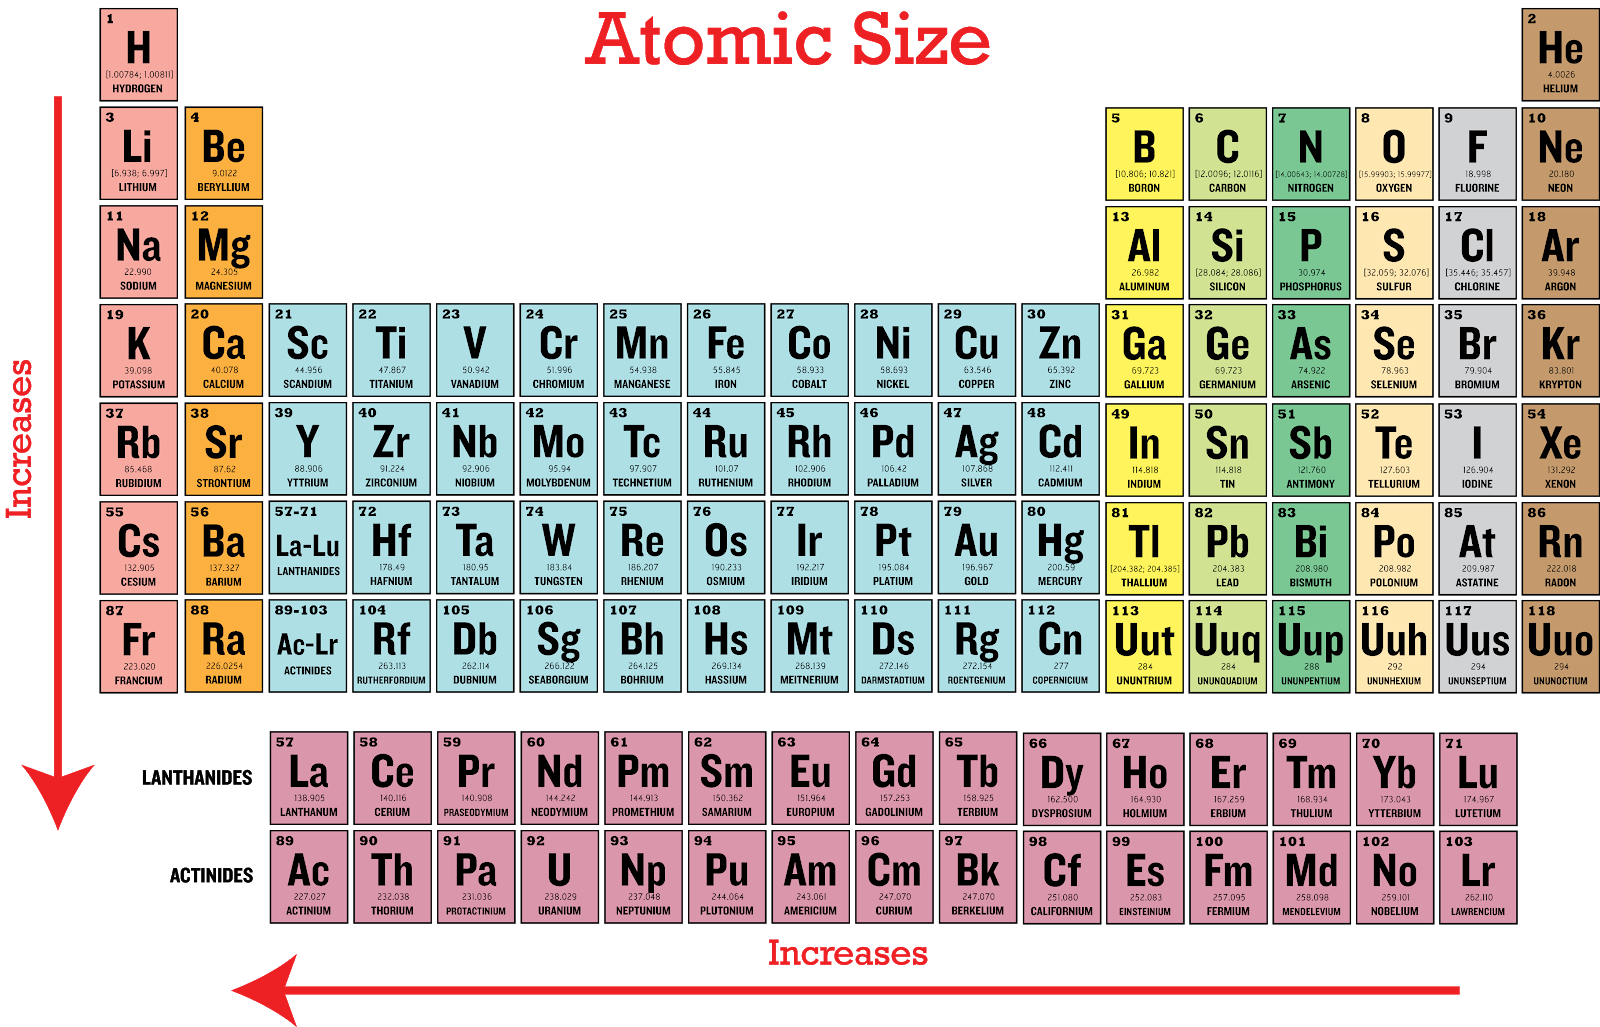 Chemistry unit 2 periodic table lessons tes teach atomic radius jobspapa gamestrikefo Image collections